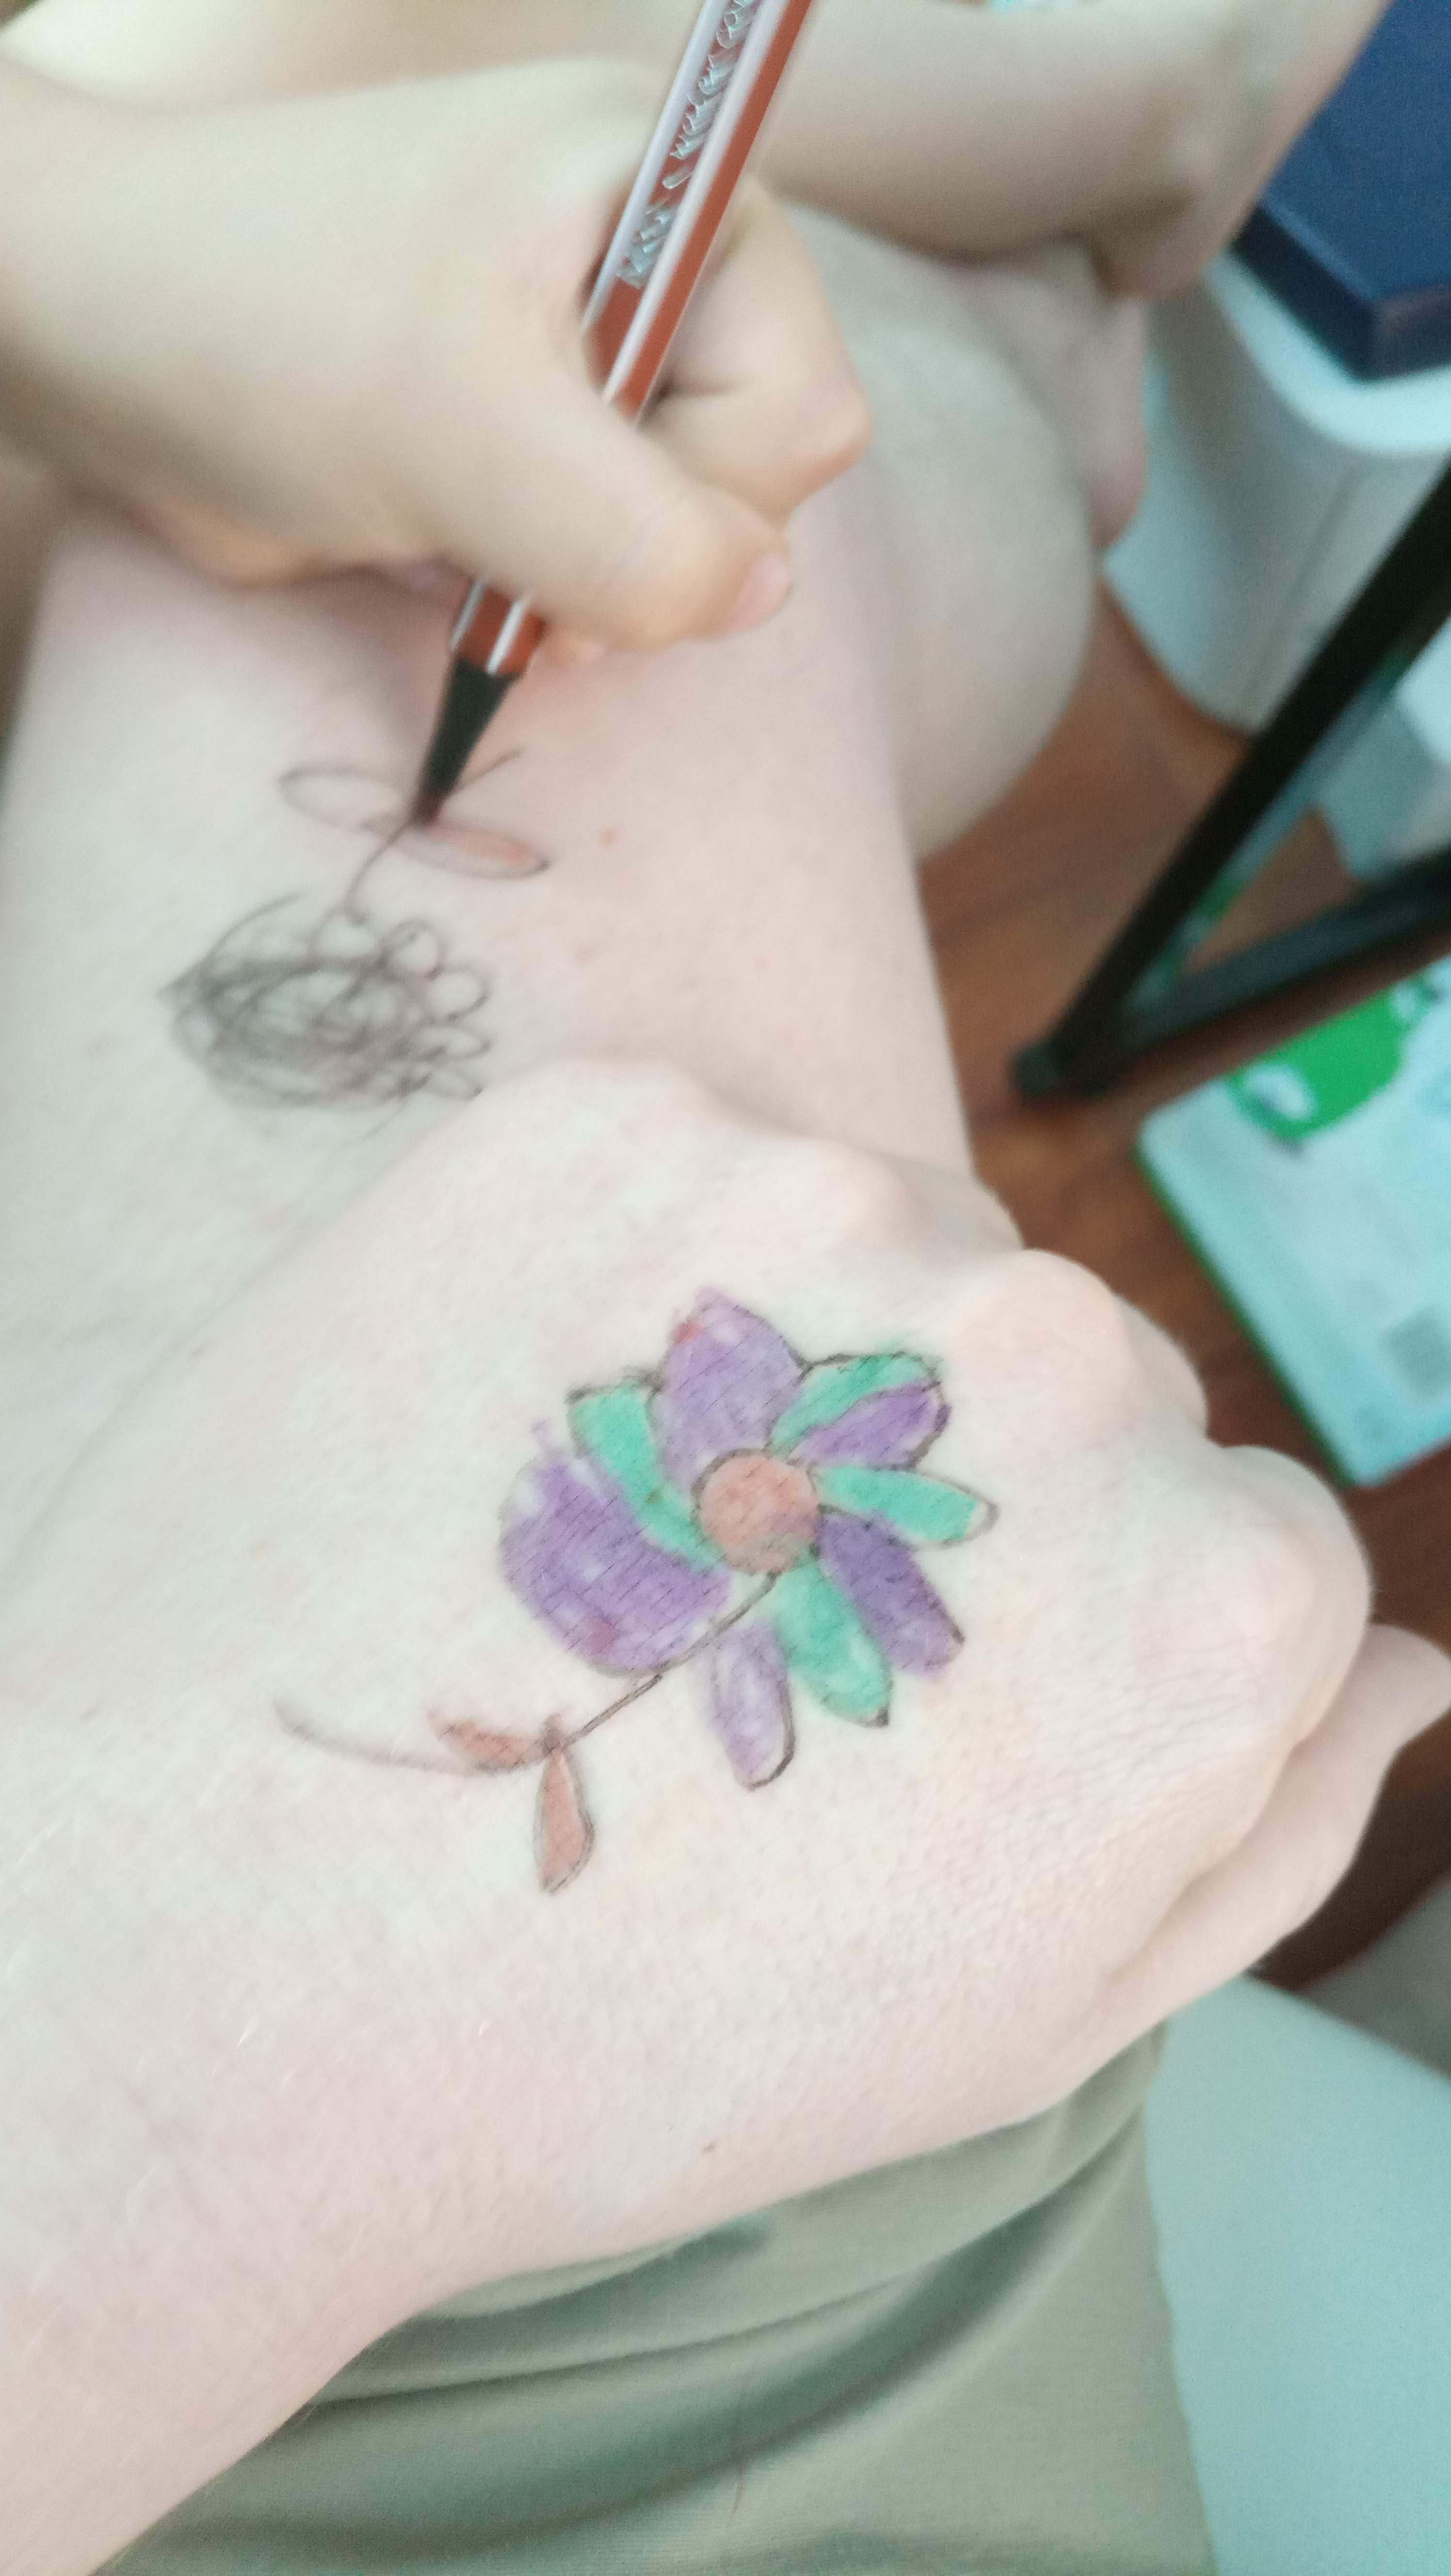 Little one is learning to tattoo